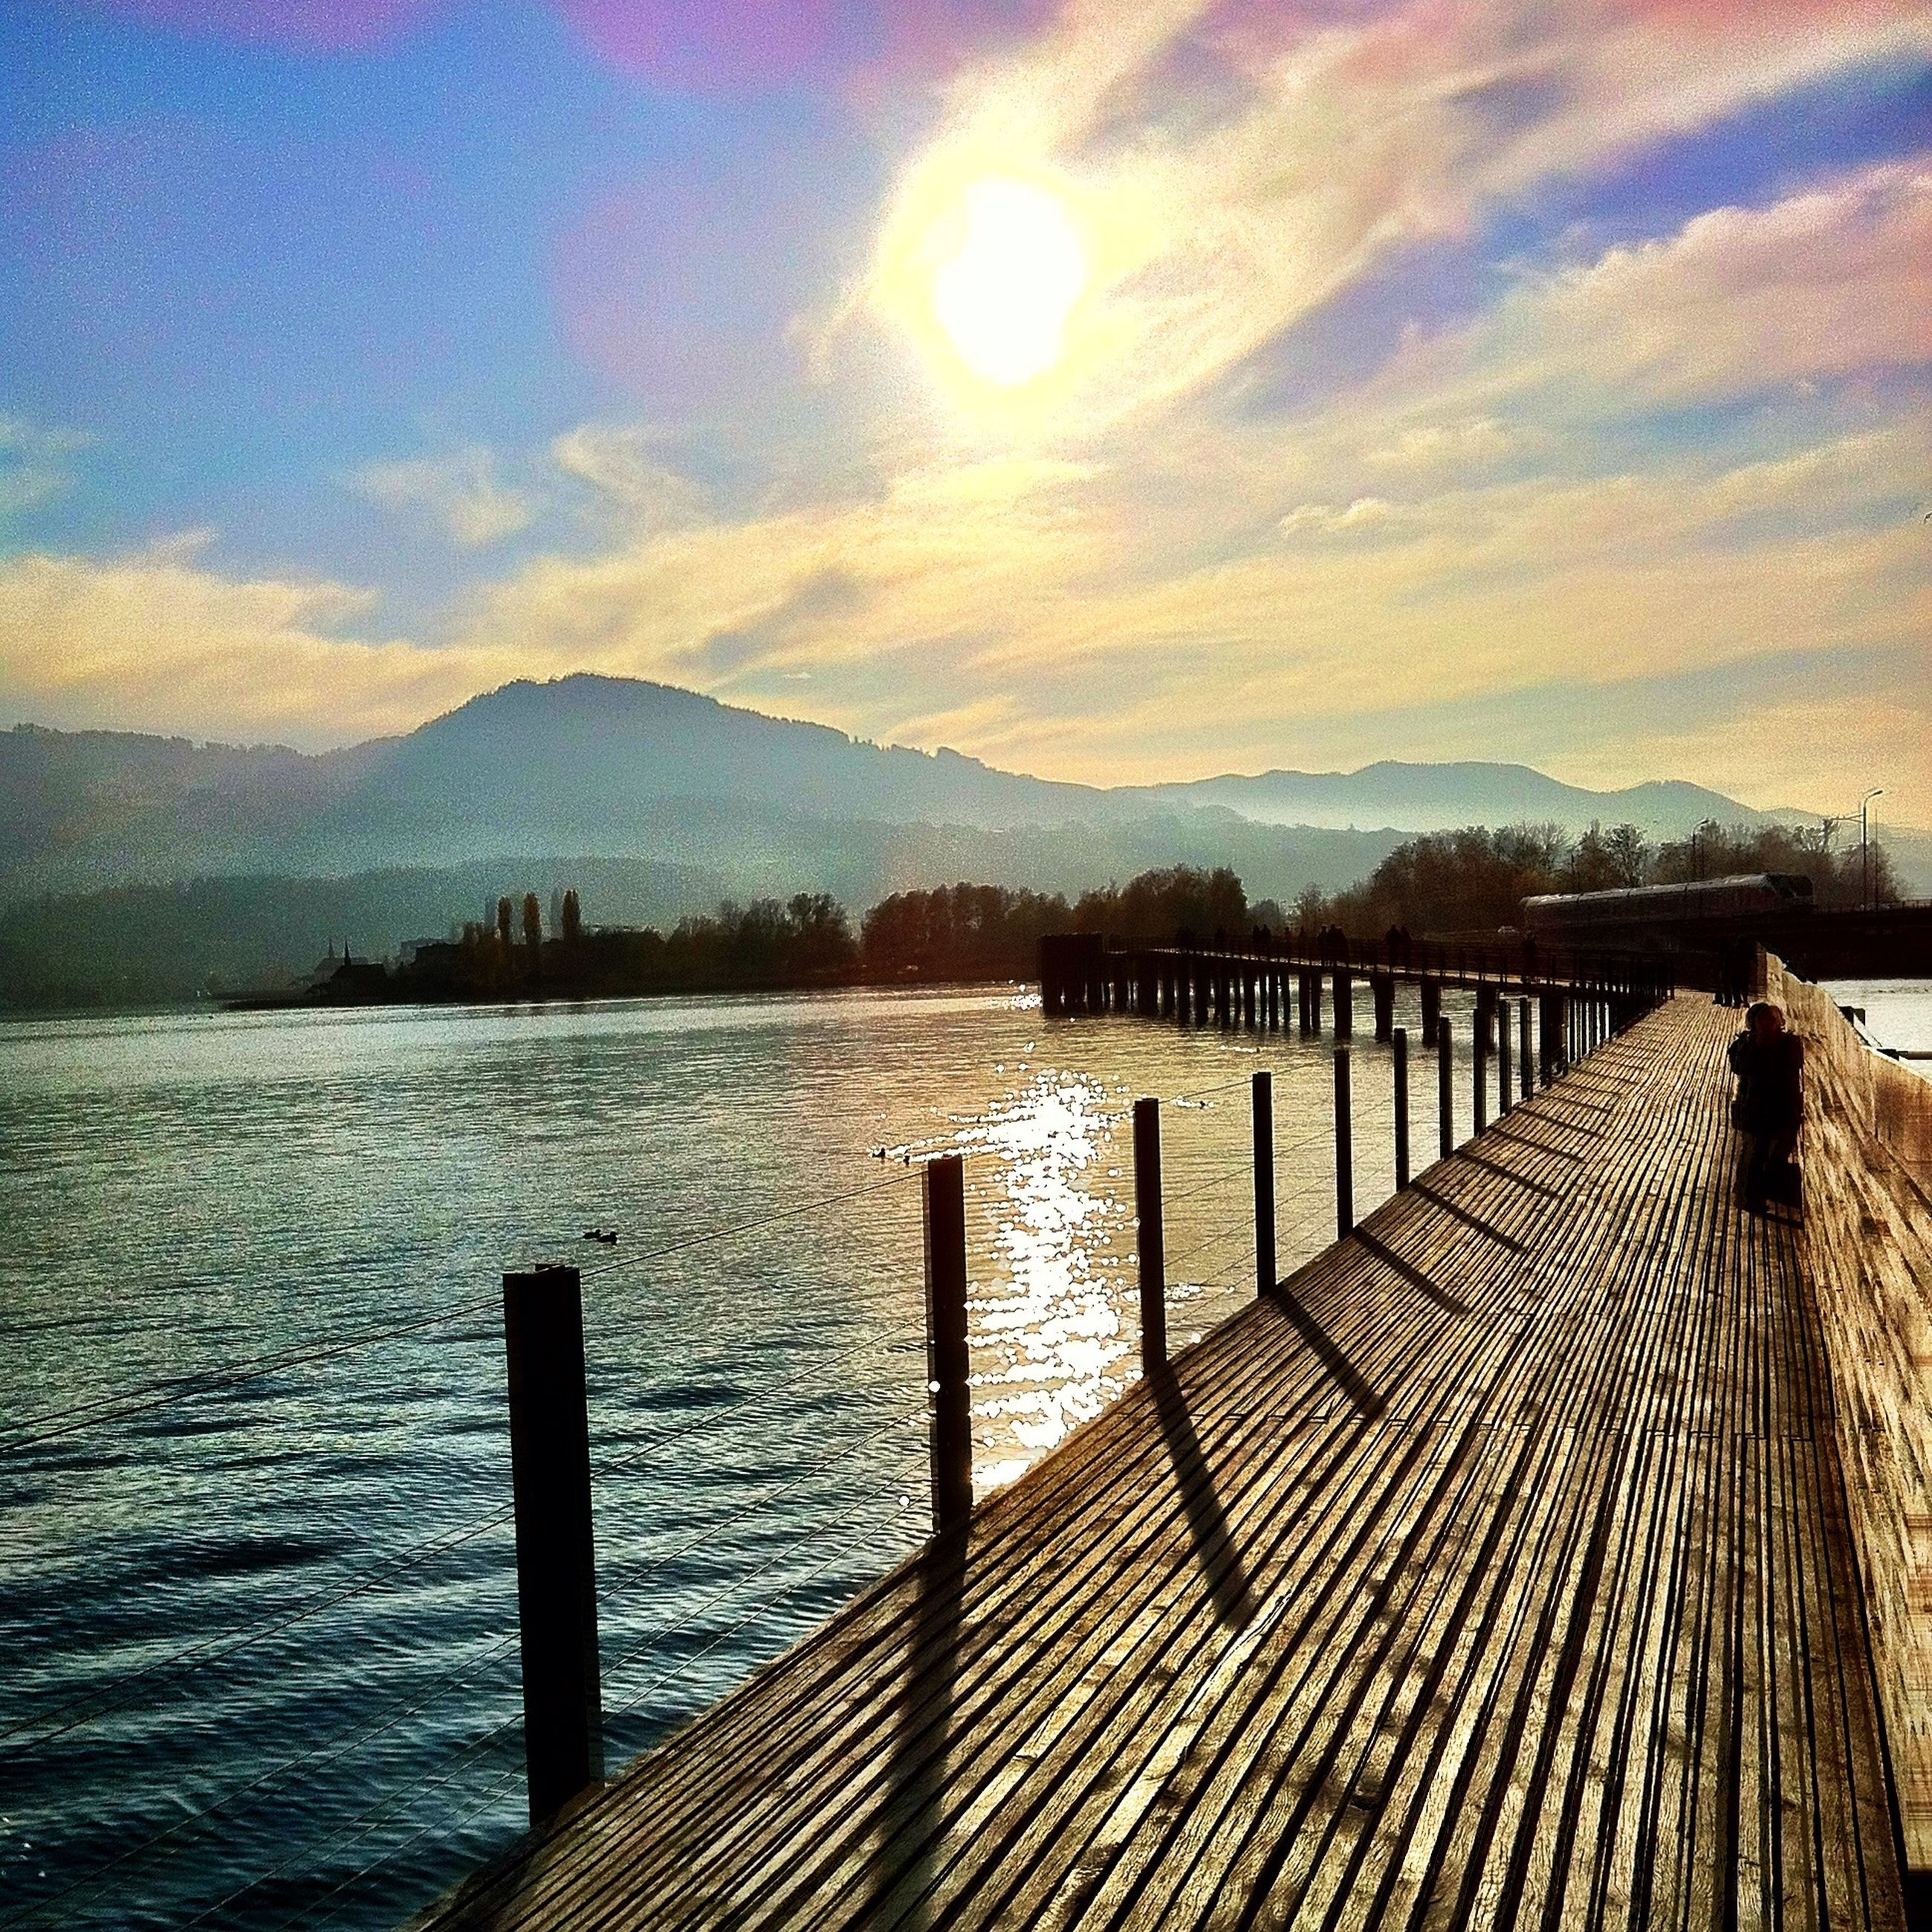 water, pier, railing, sky, tranquil scene, mountain, tranquility, scenics, sea, jetty, the way forward, built structure, beauty in nature, sunset, nature, mountain range, lake, boardwalk, cloud - sky, wood - material